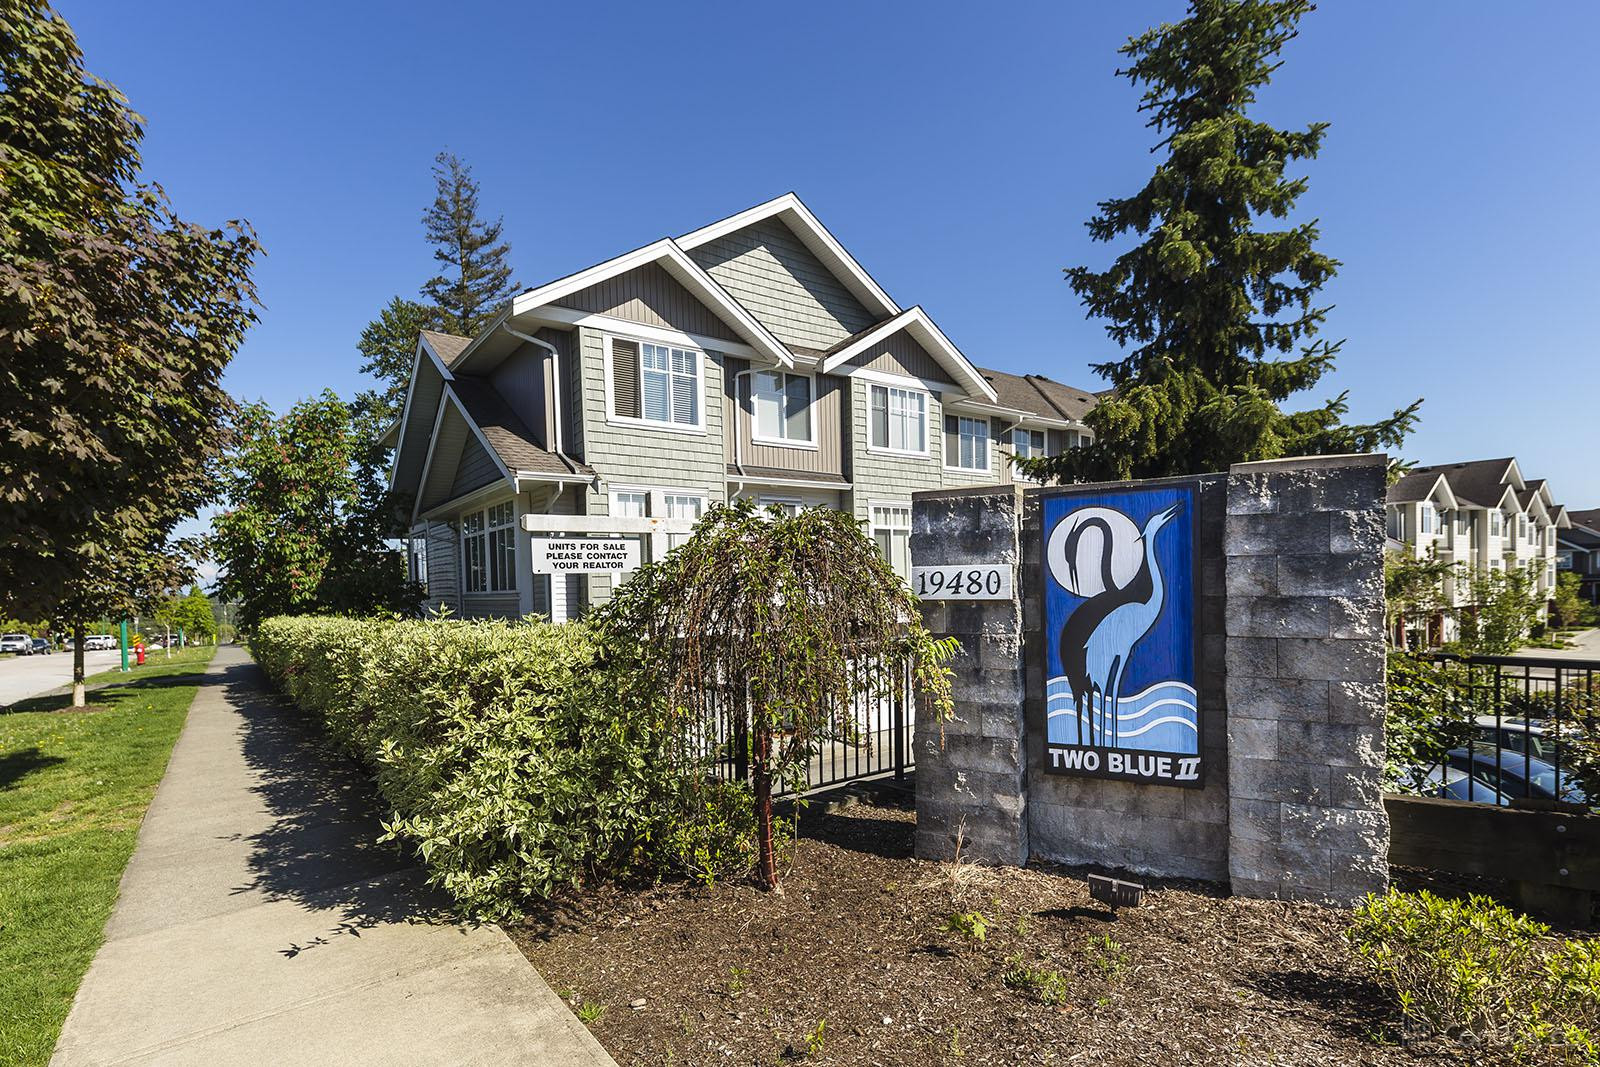 Two Blue II at 19480 66 Ave, Surrey 0